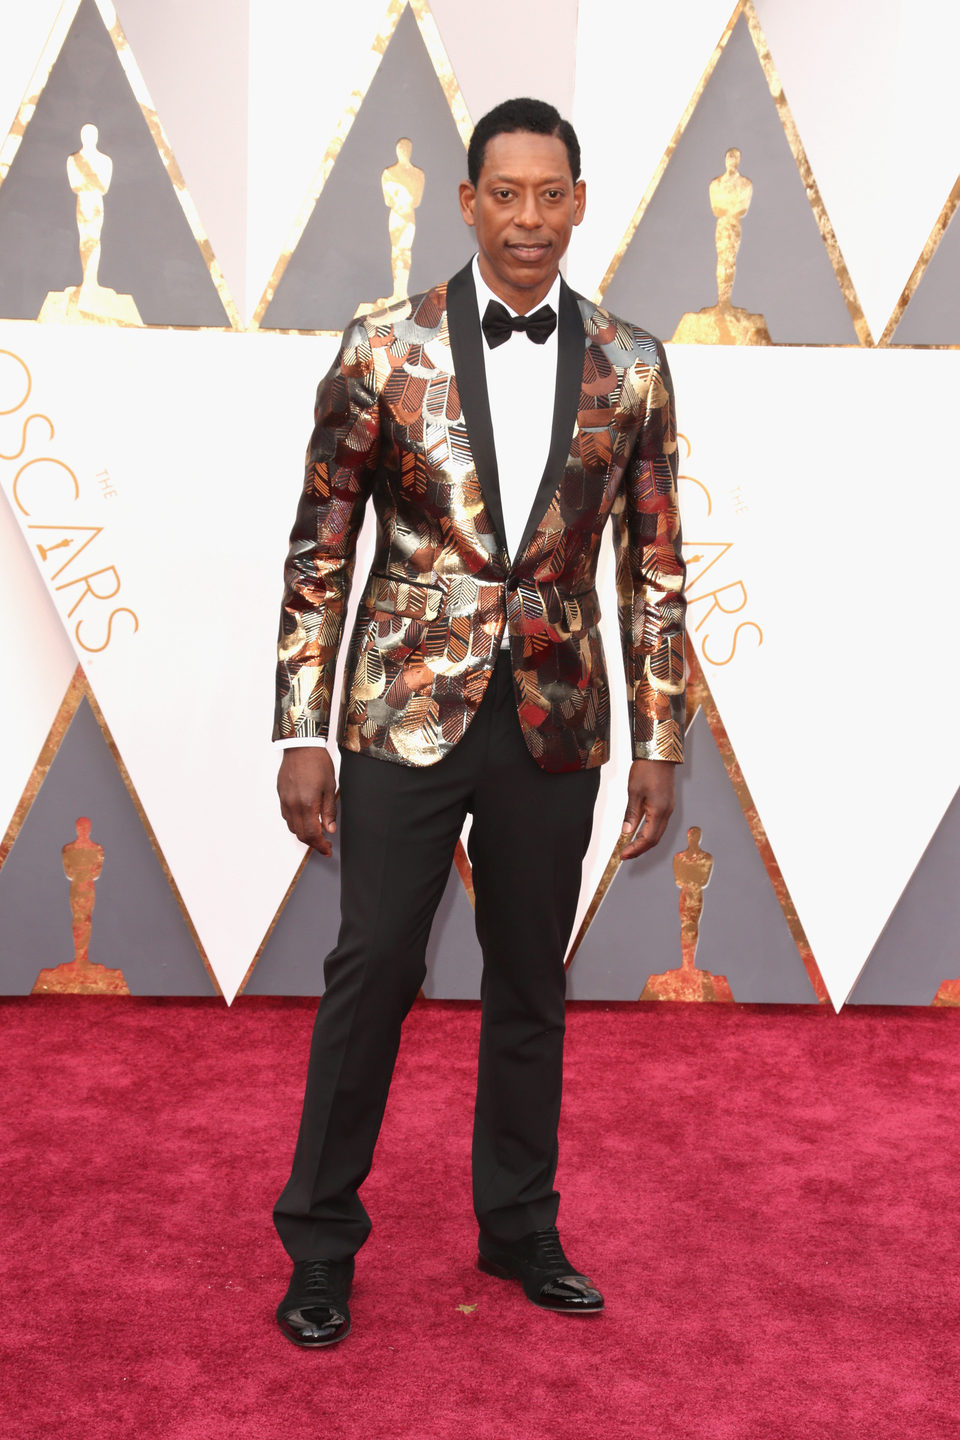 Orlando Jones at the Oscars 2016 red carpet